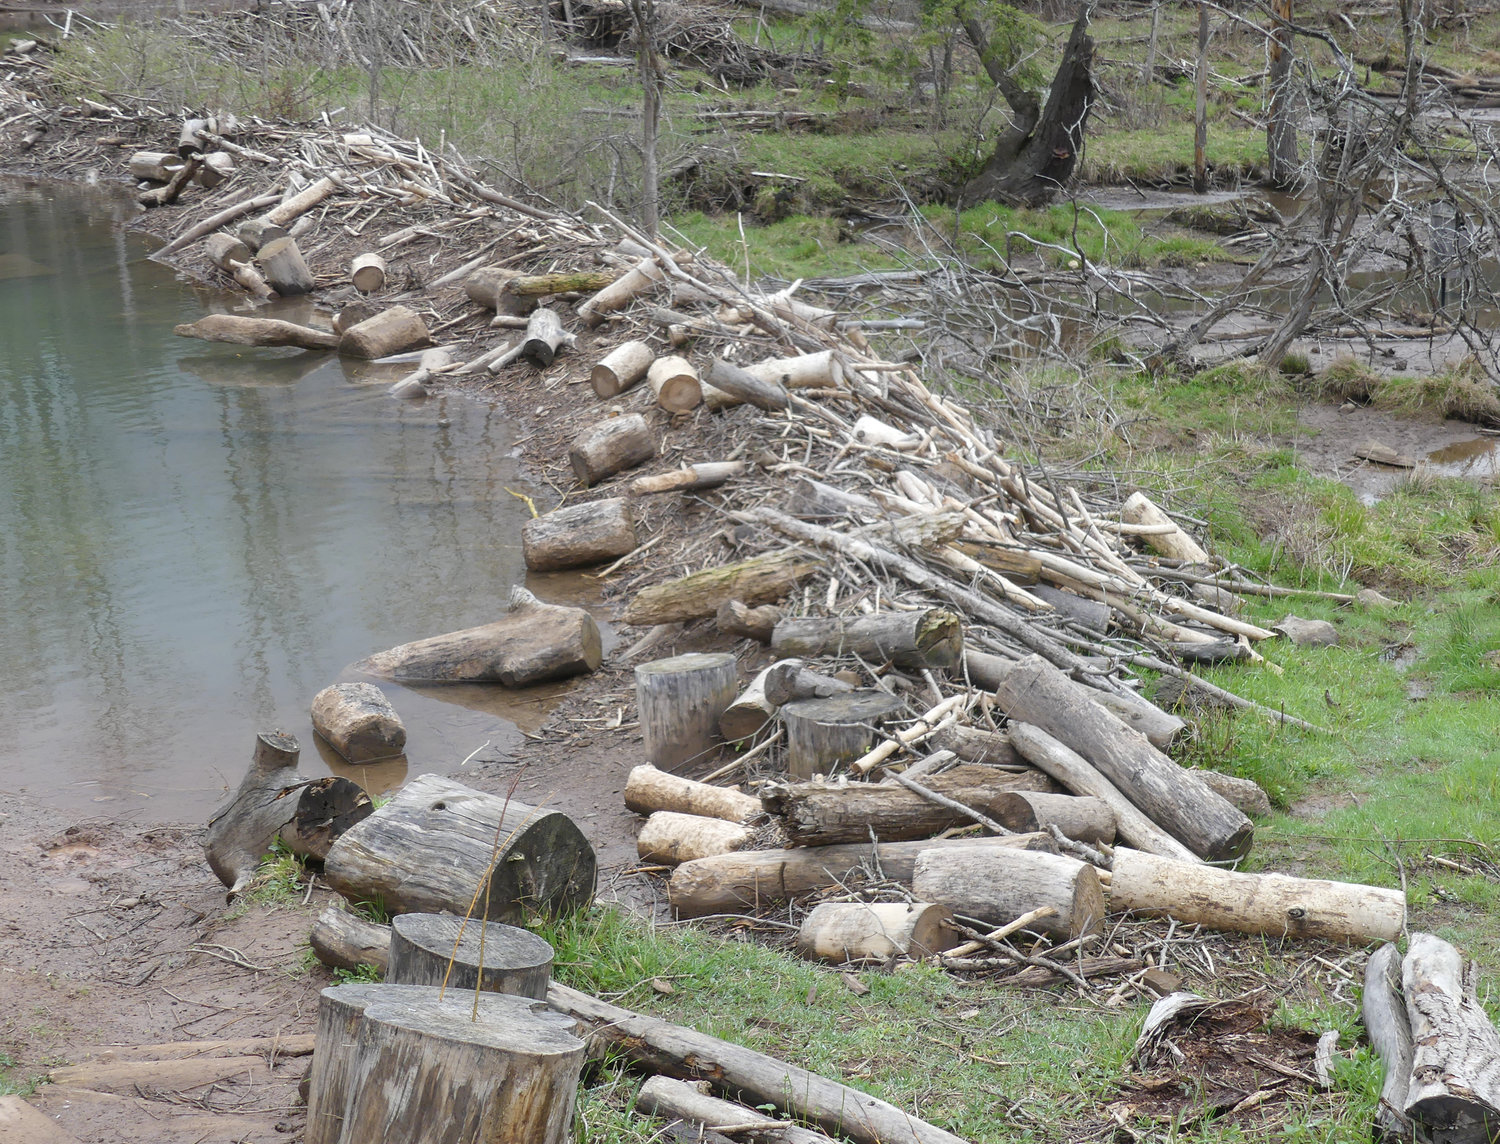 HARD LABOR — This wall constructed of logs is the result of all the handiwork of beavers who reside at the Spring Farm CARES Nature Sanctuary in Clinton.